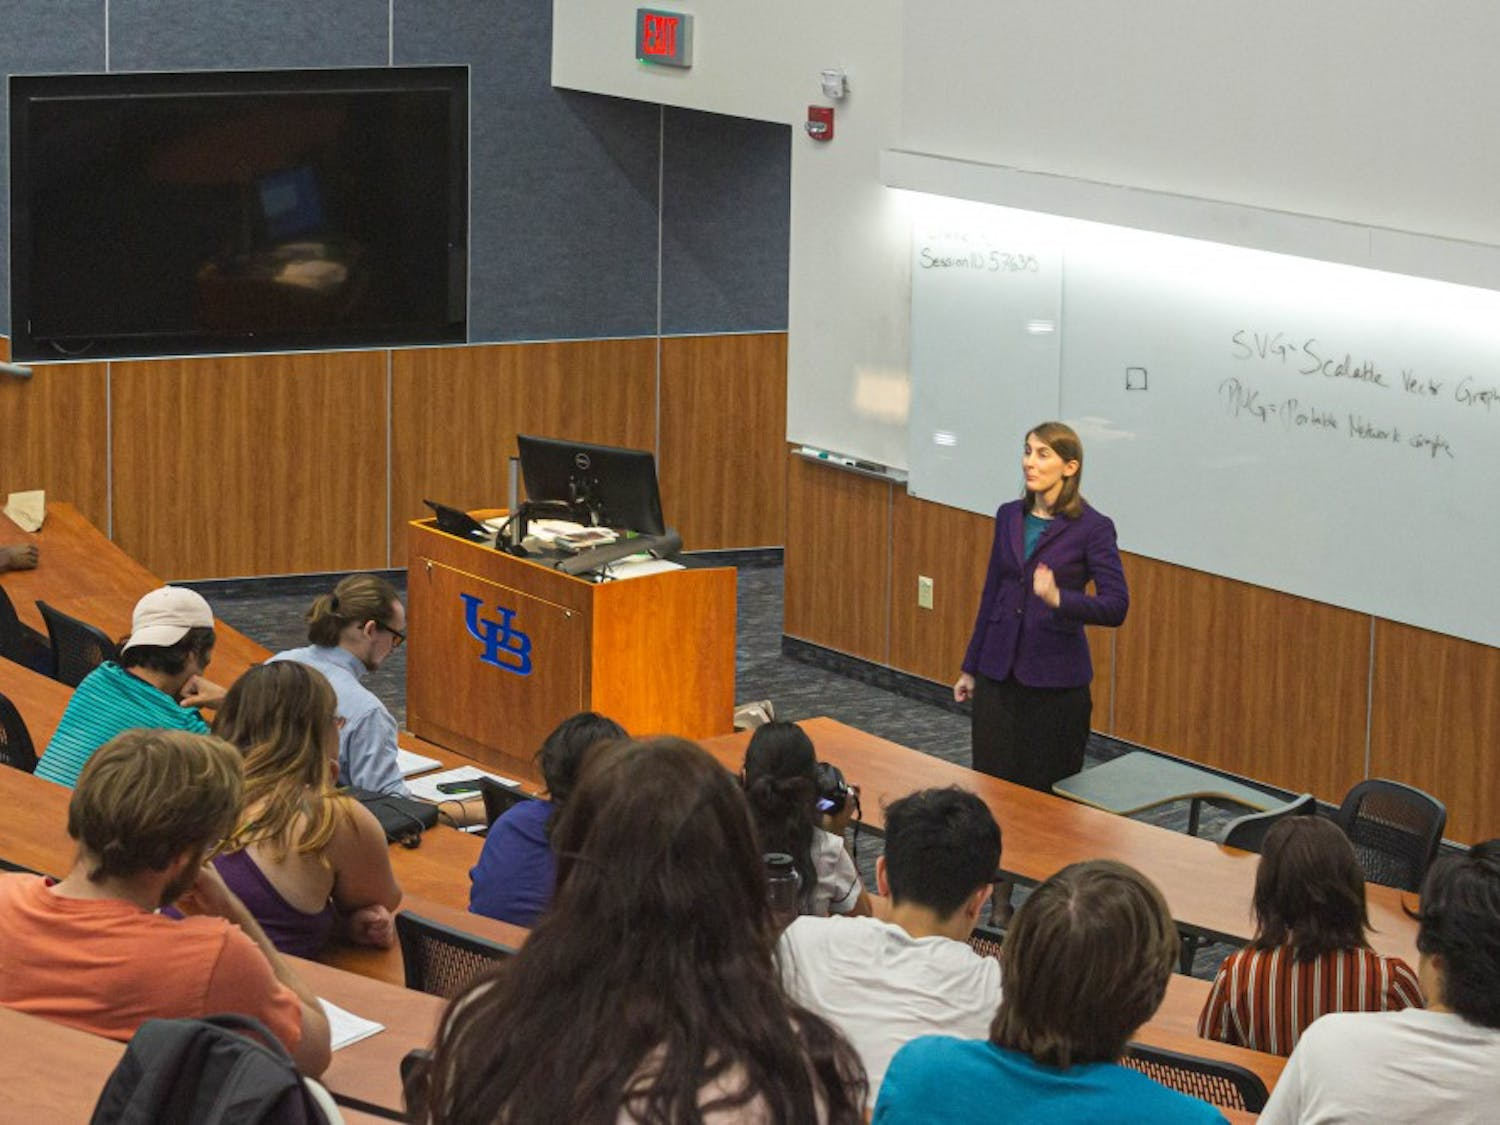 """Professor Amanda Kennell discusses """"Spirited Away"""" and """"Howl's Moving Castle"""" to her class of 119 undergraduates"""